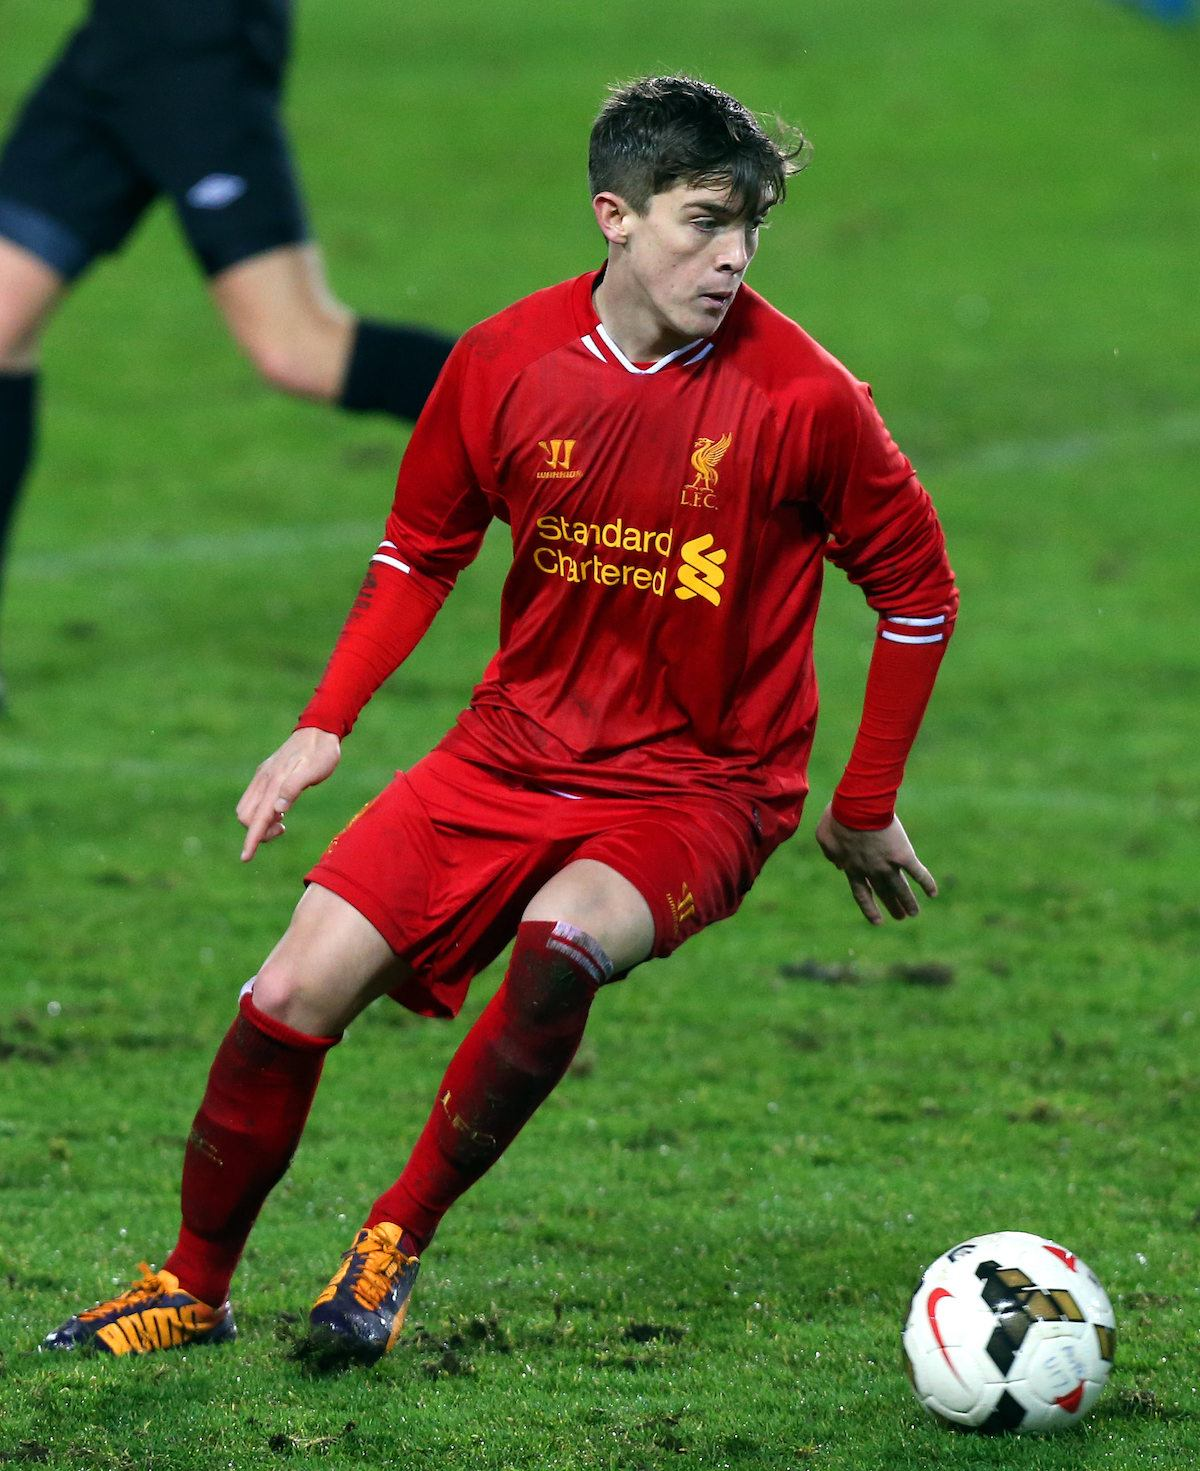 Trickett-Smith_turns_on_the_ball_during_a_Liverpool_academy_game